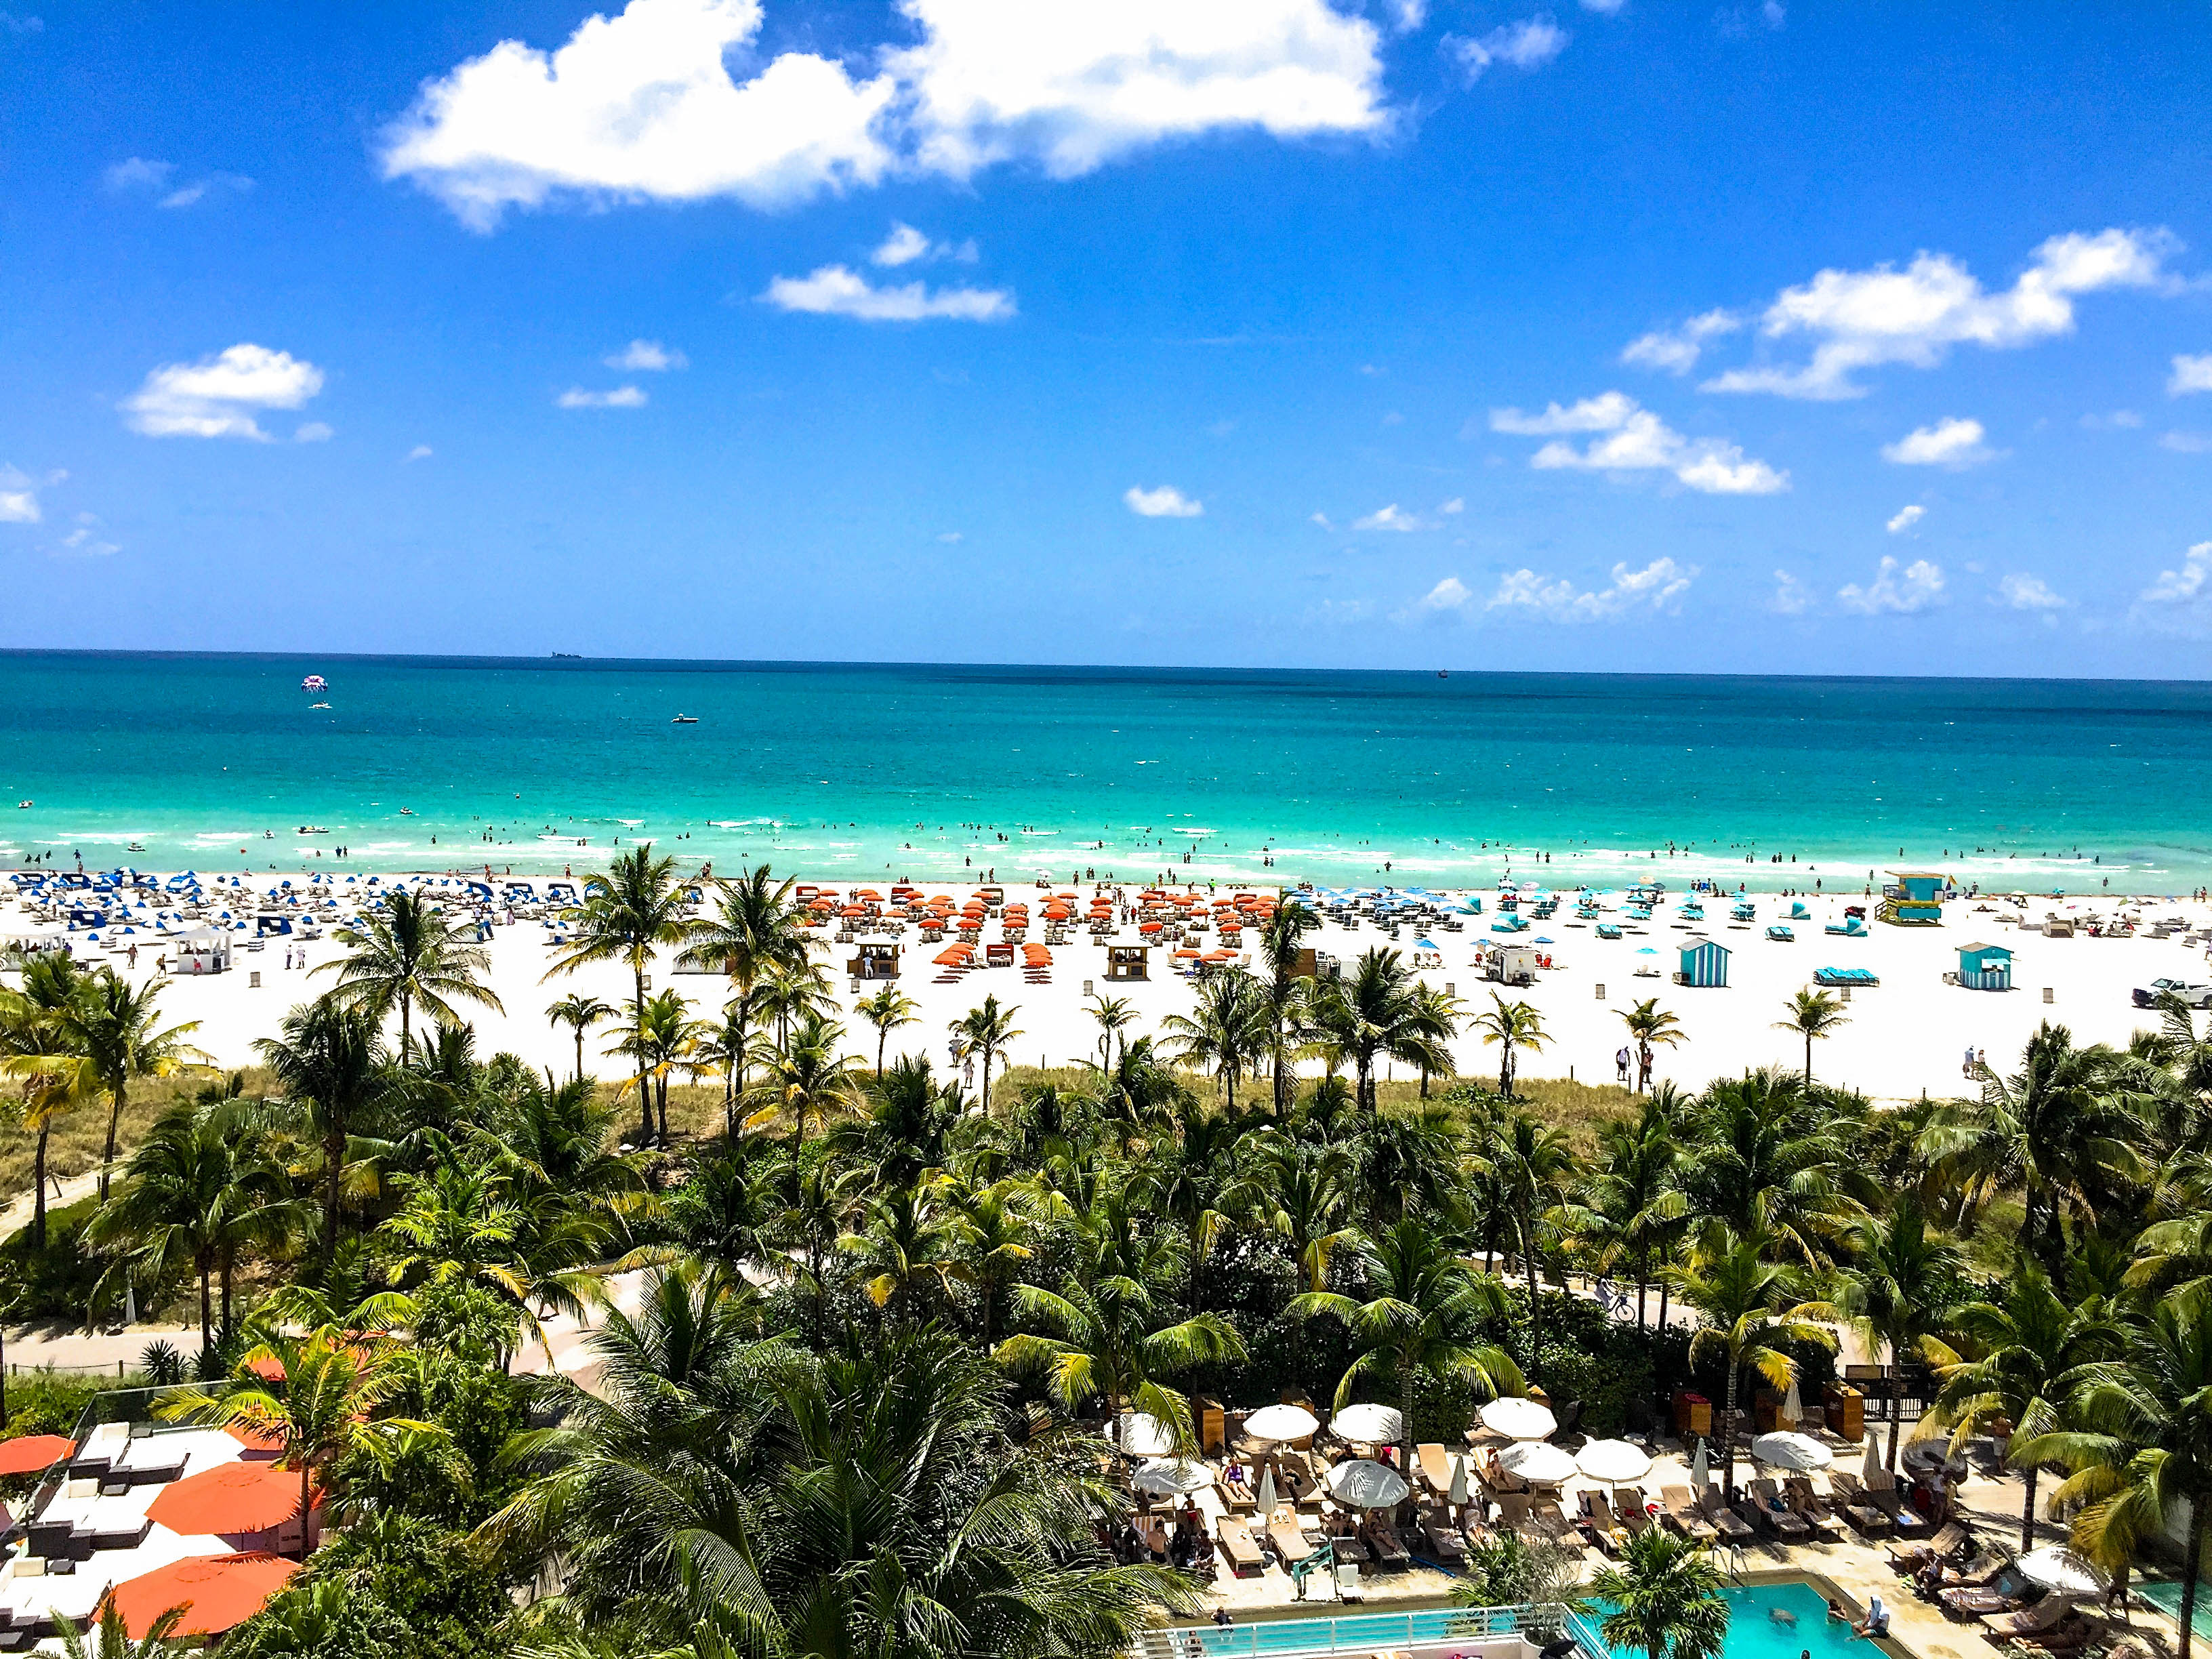 A Weekend Getaway in South Beach Miami